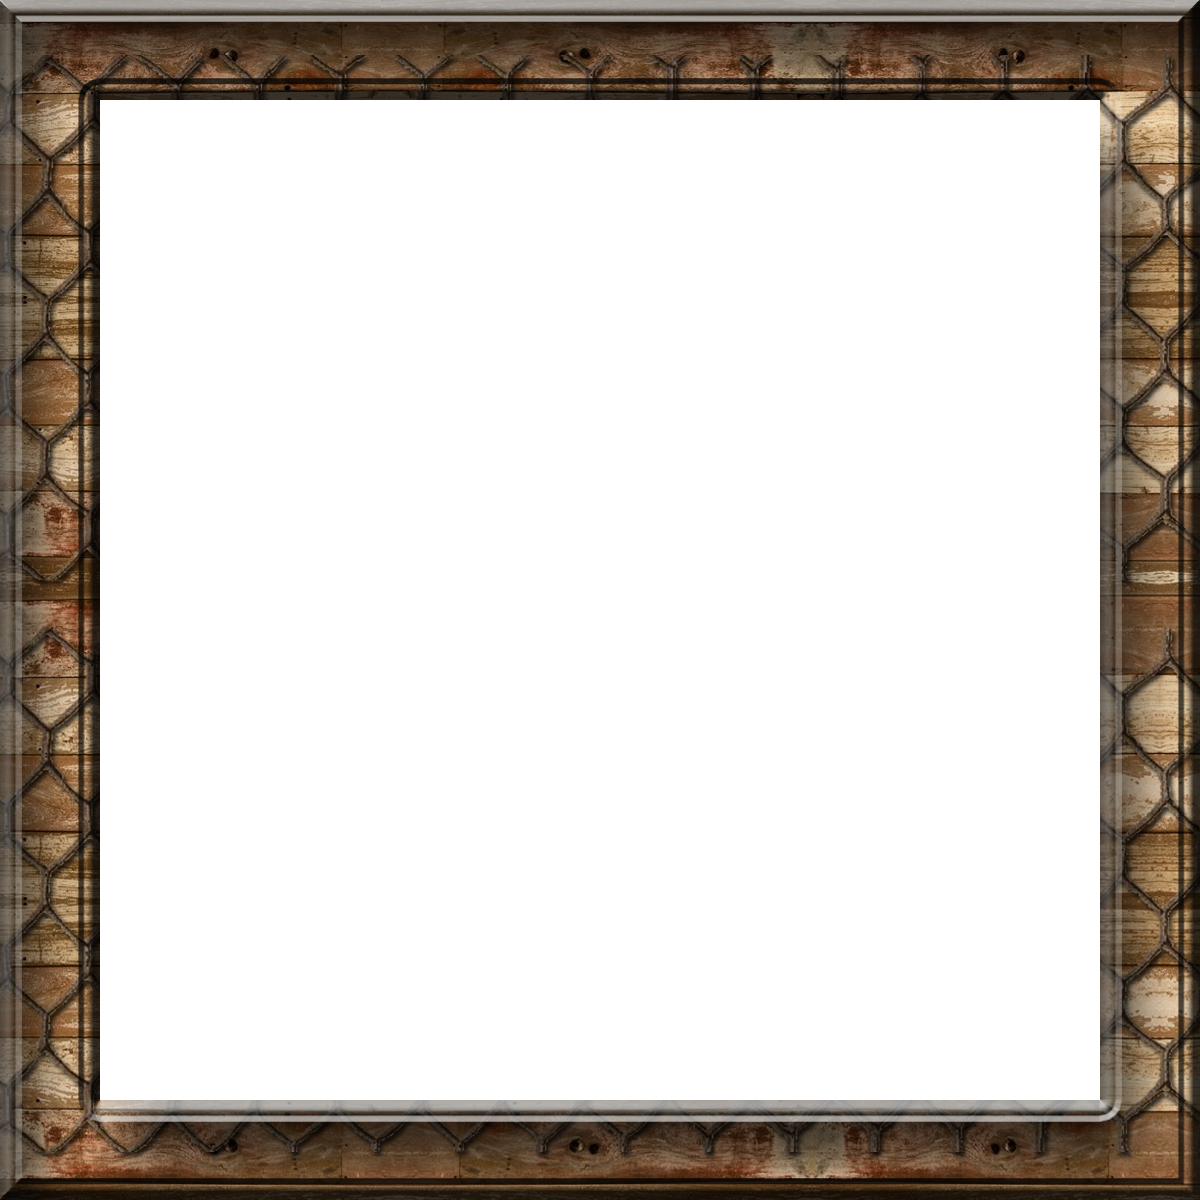 Square picture frame png. Clipart free icons and